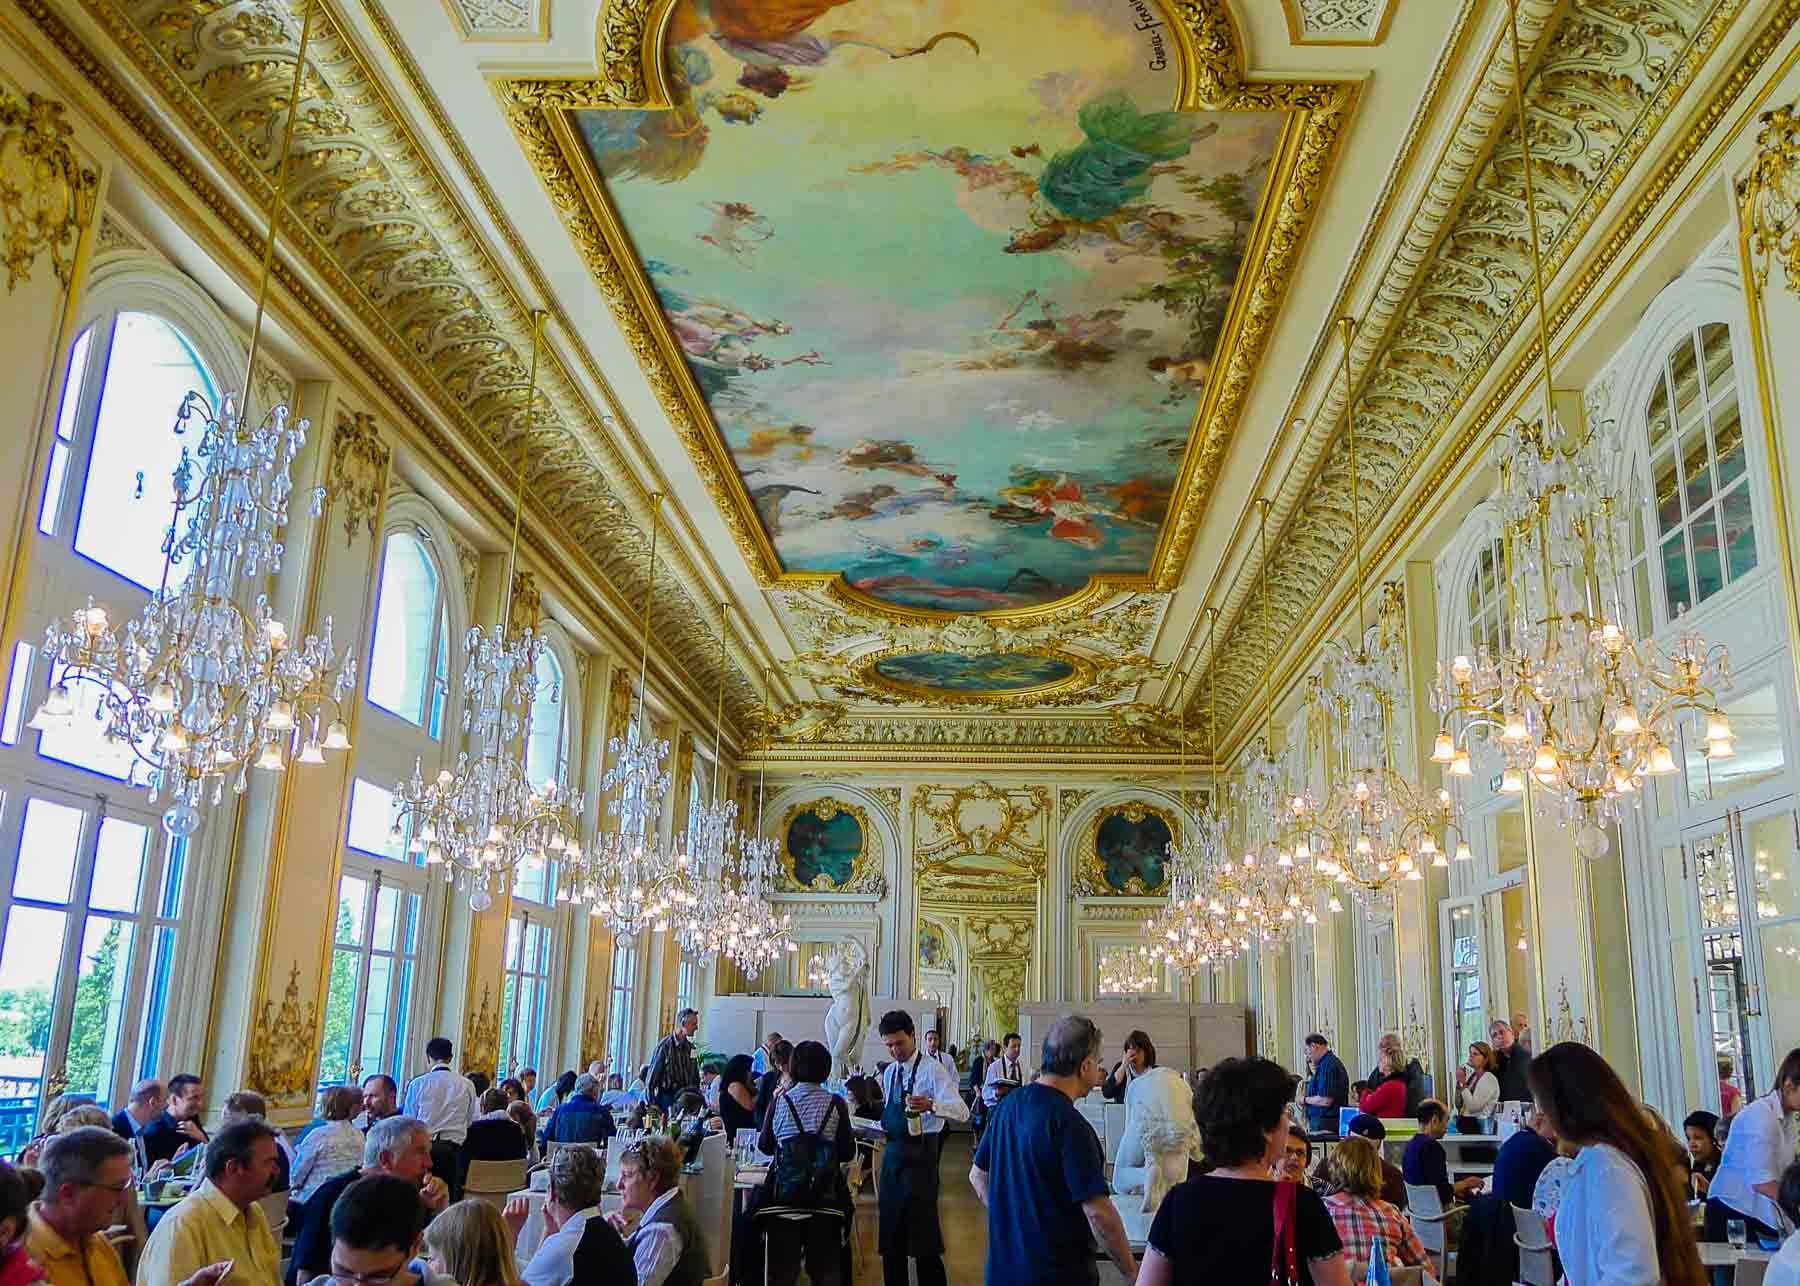 Restaurant at Musee d'Orsay.